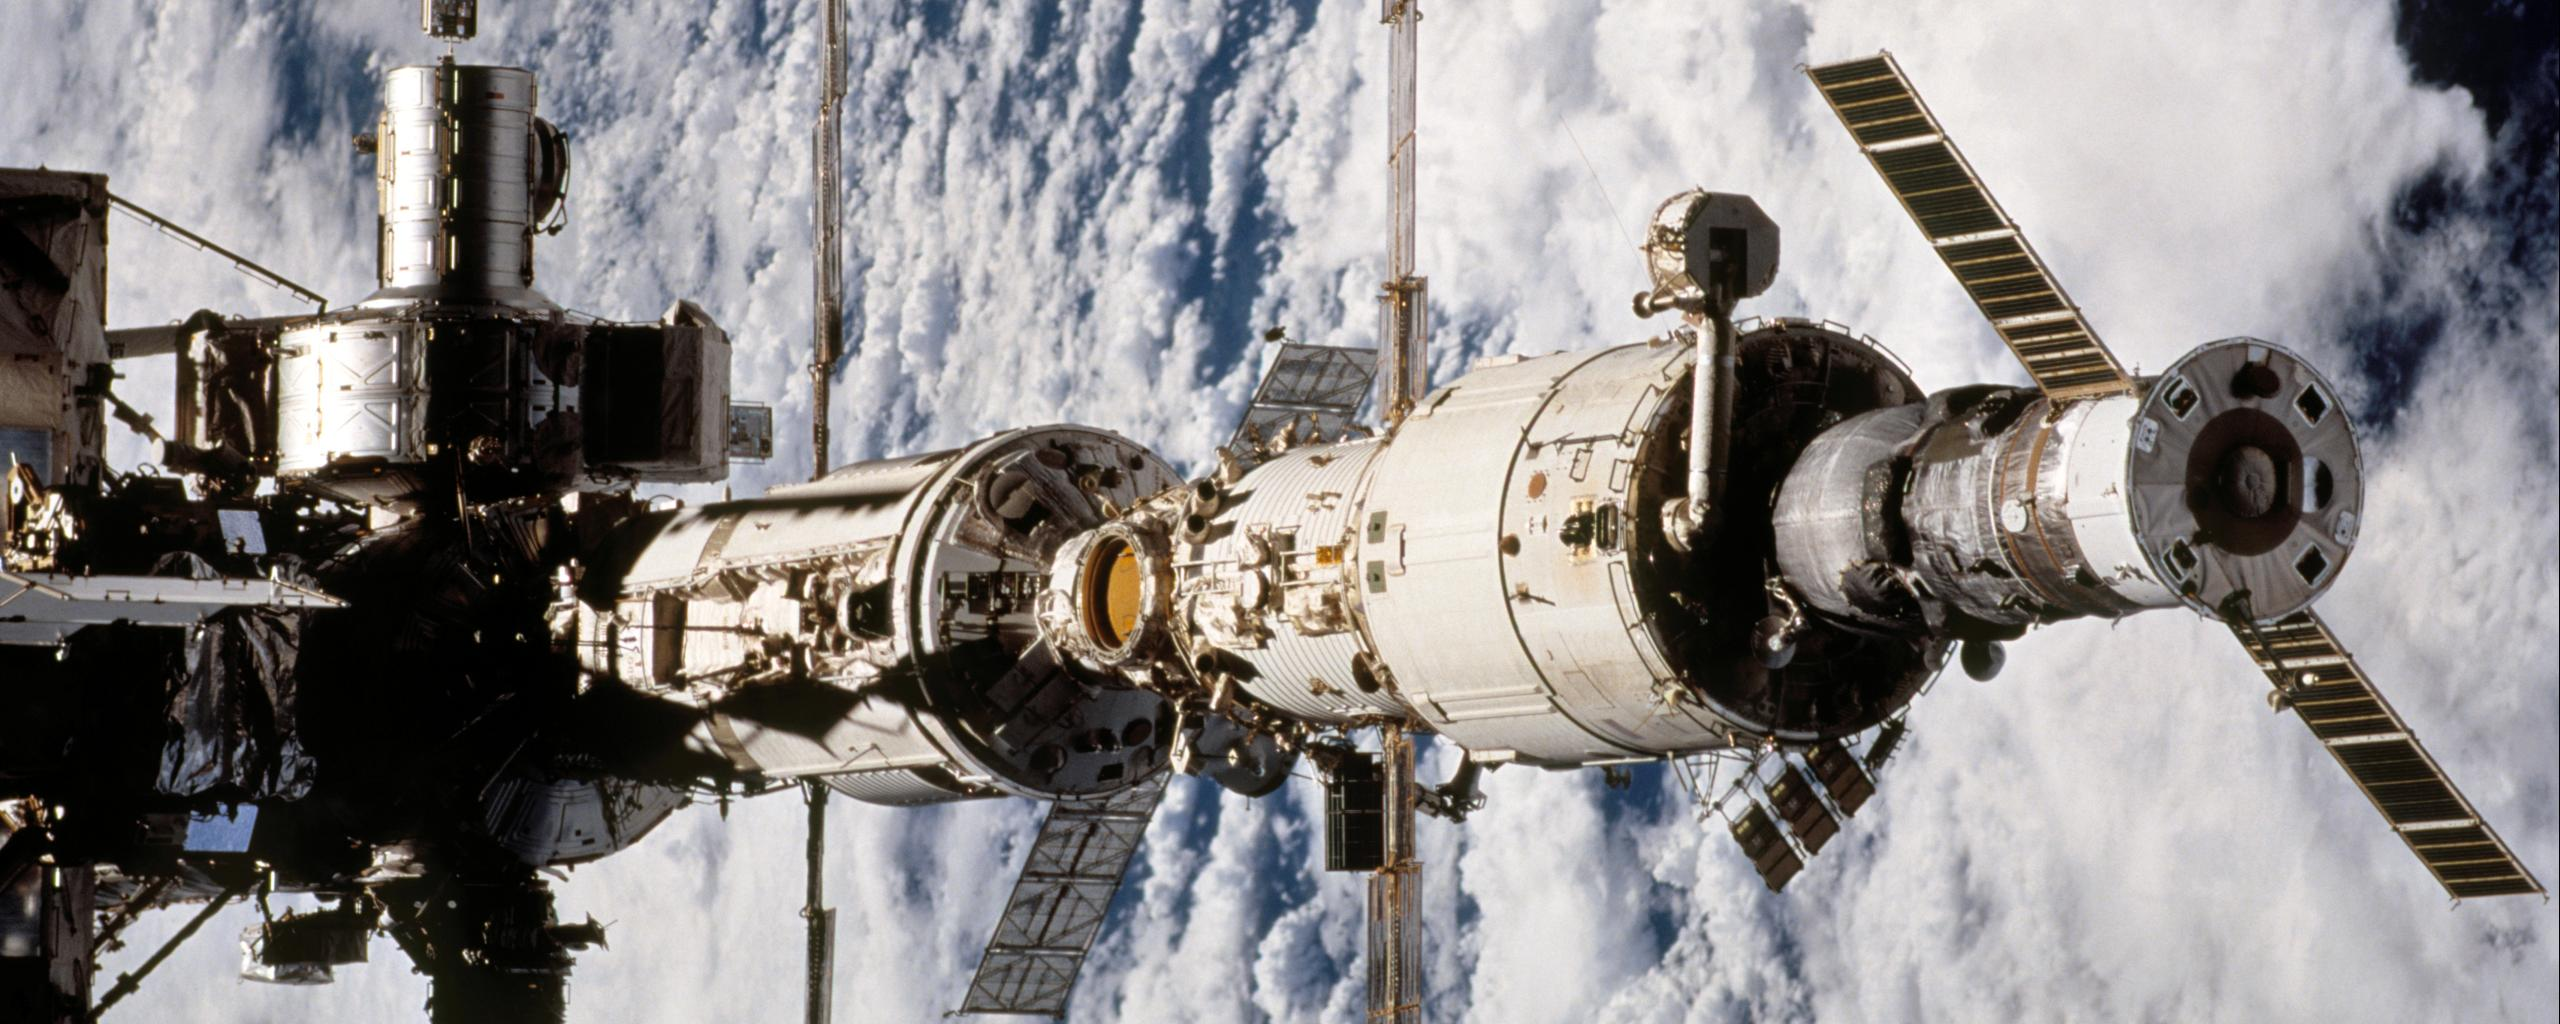 space station over earth taken during sts 111